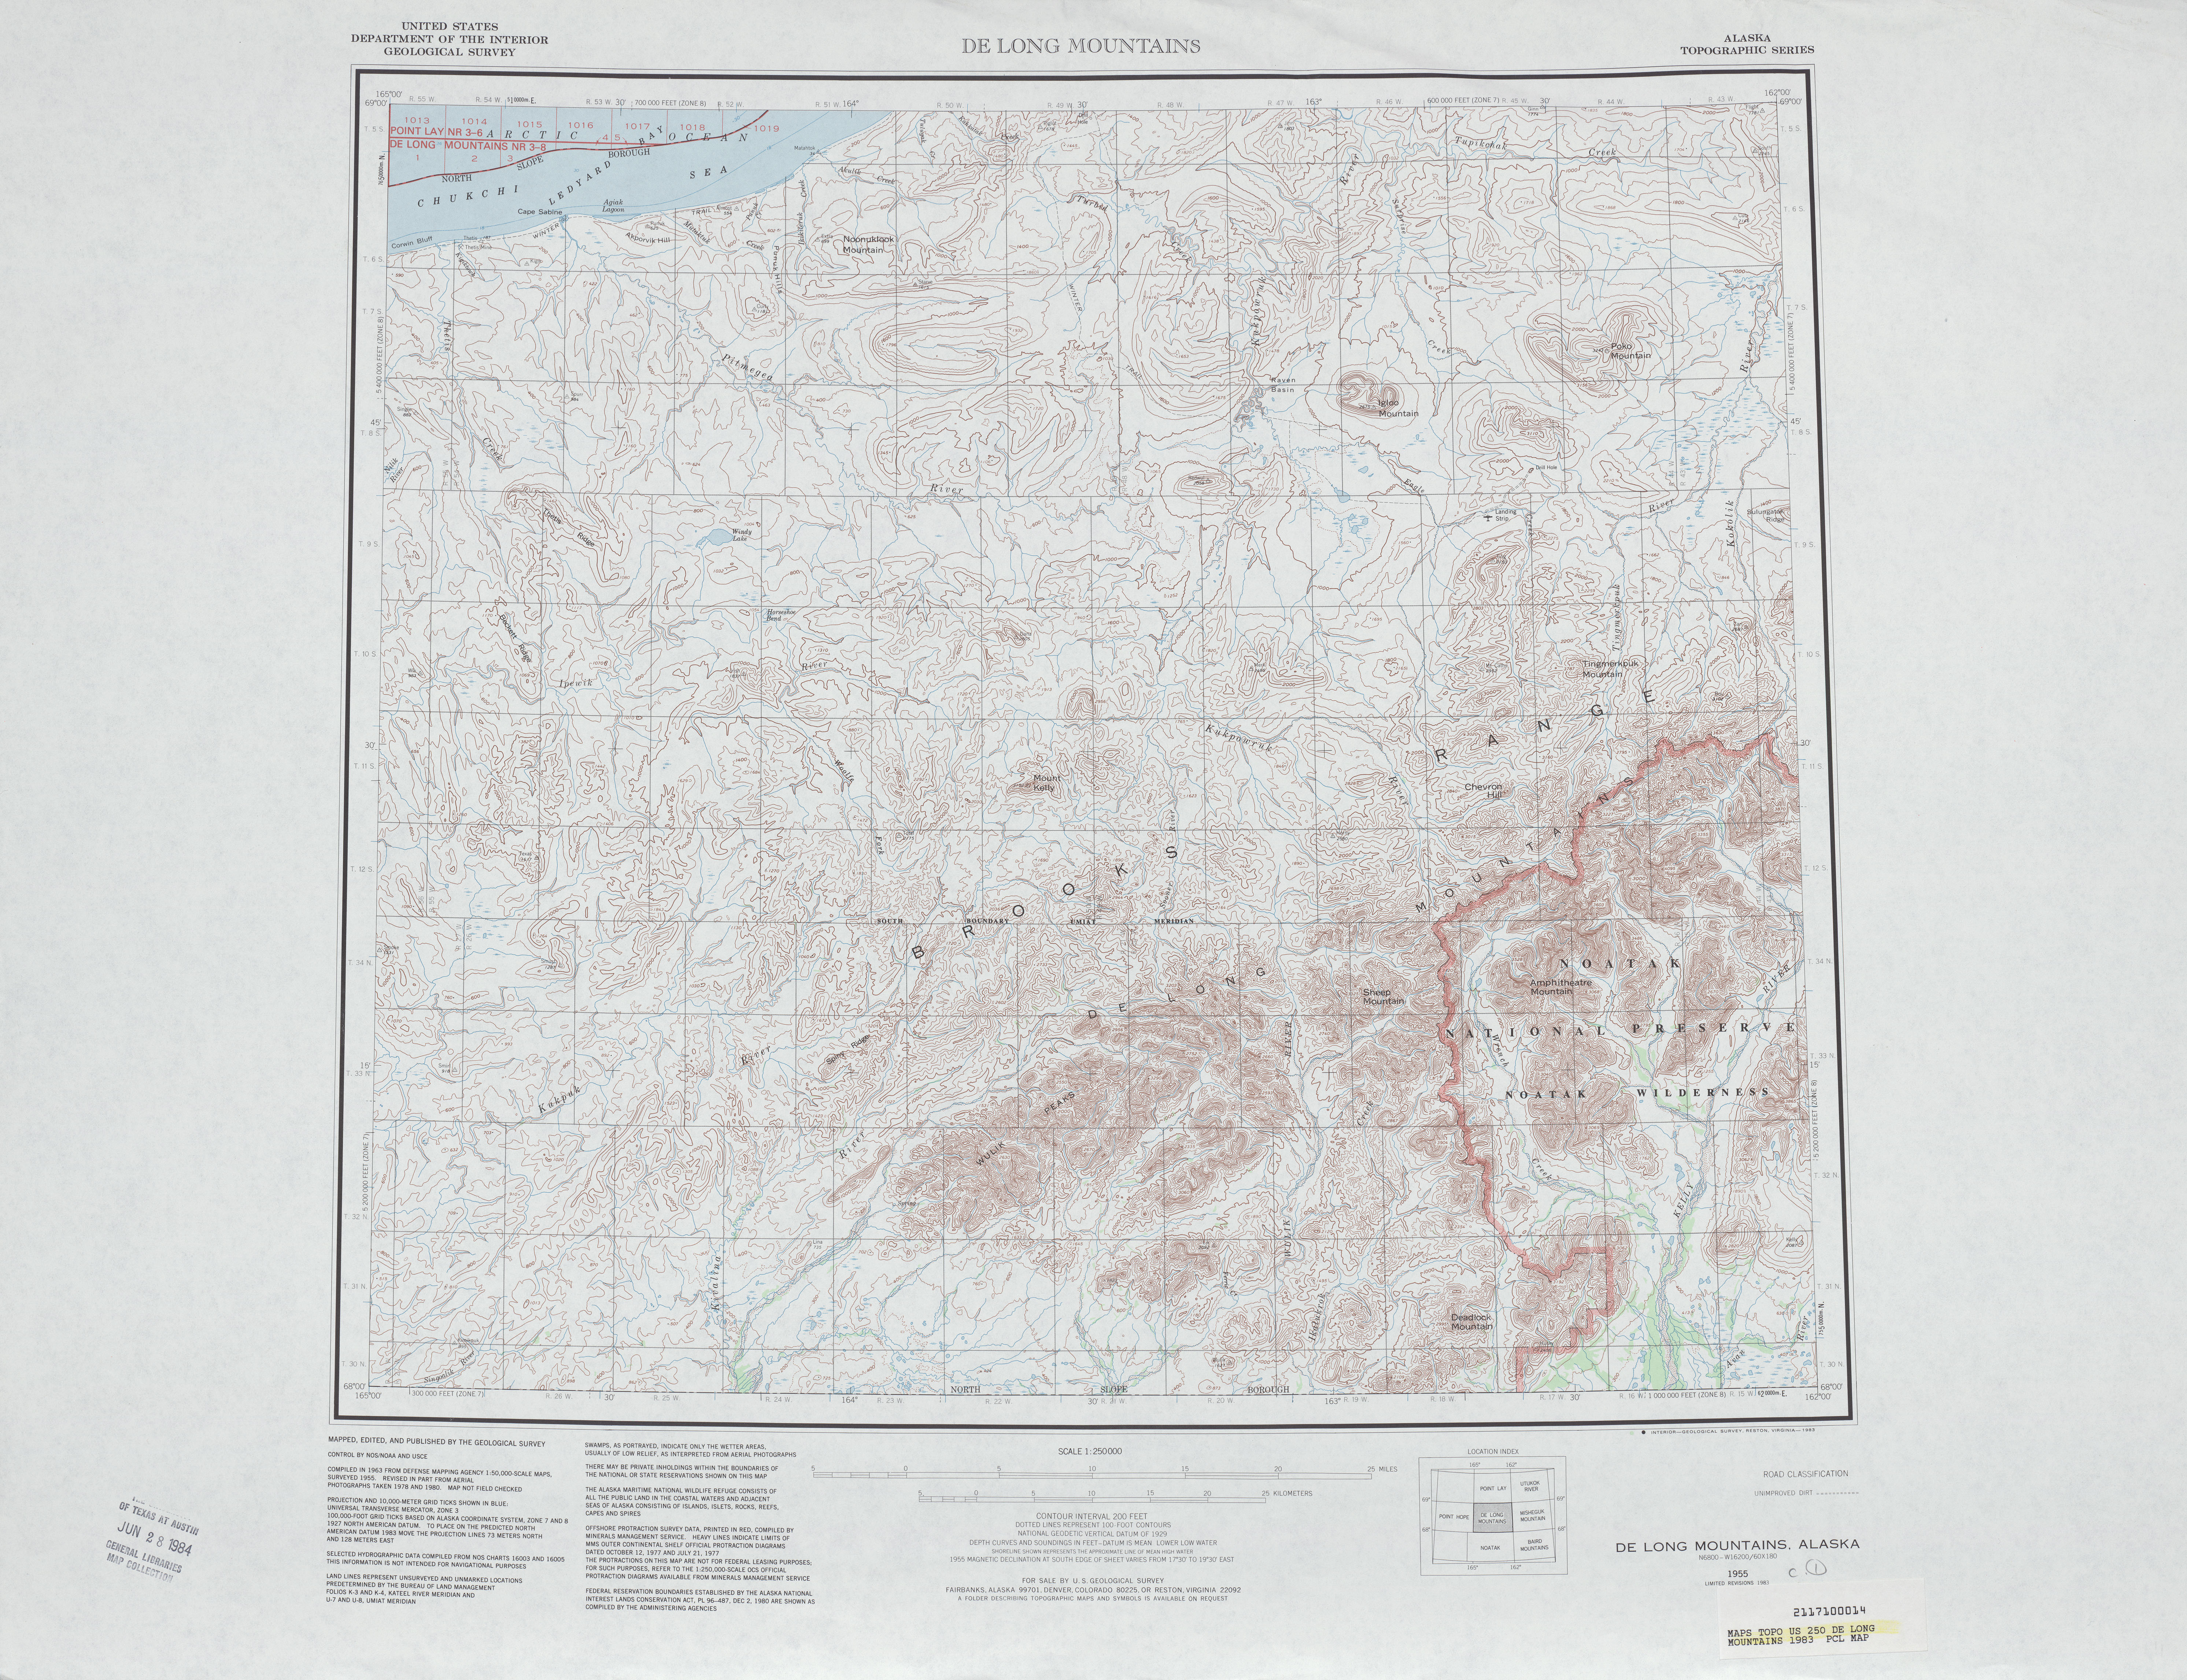 Hoja De Long Mountains del Mapa Topográfico de los Estados Unidos 1983